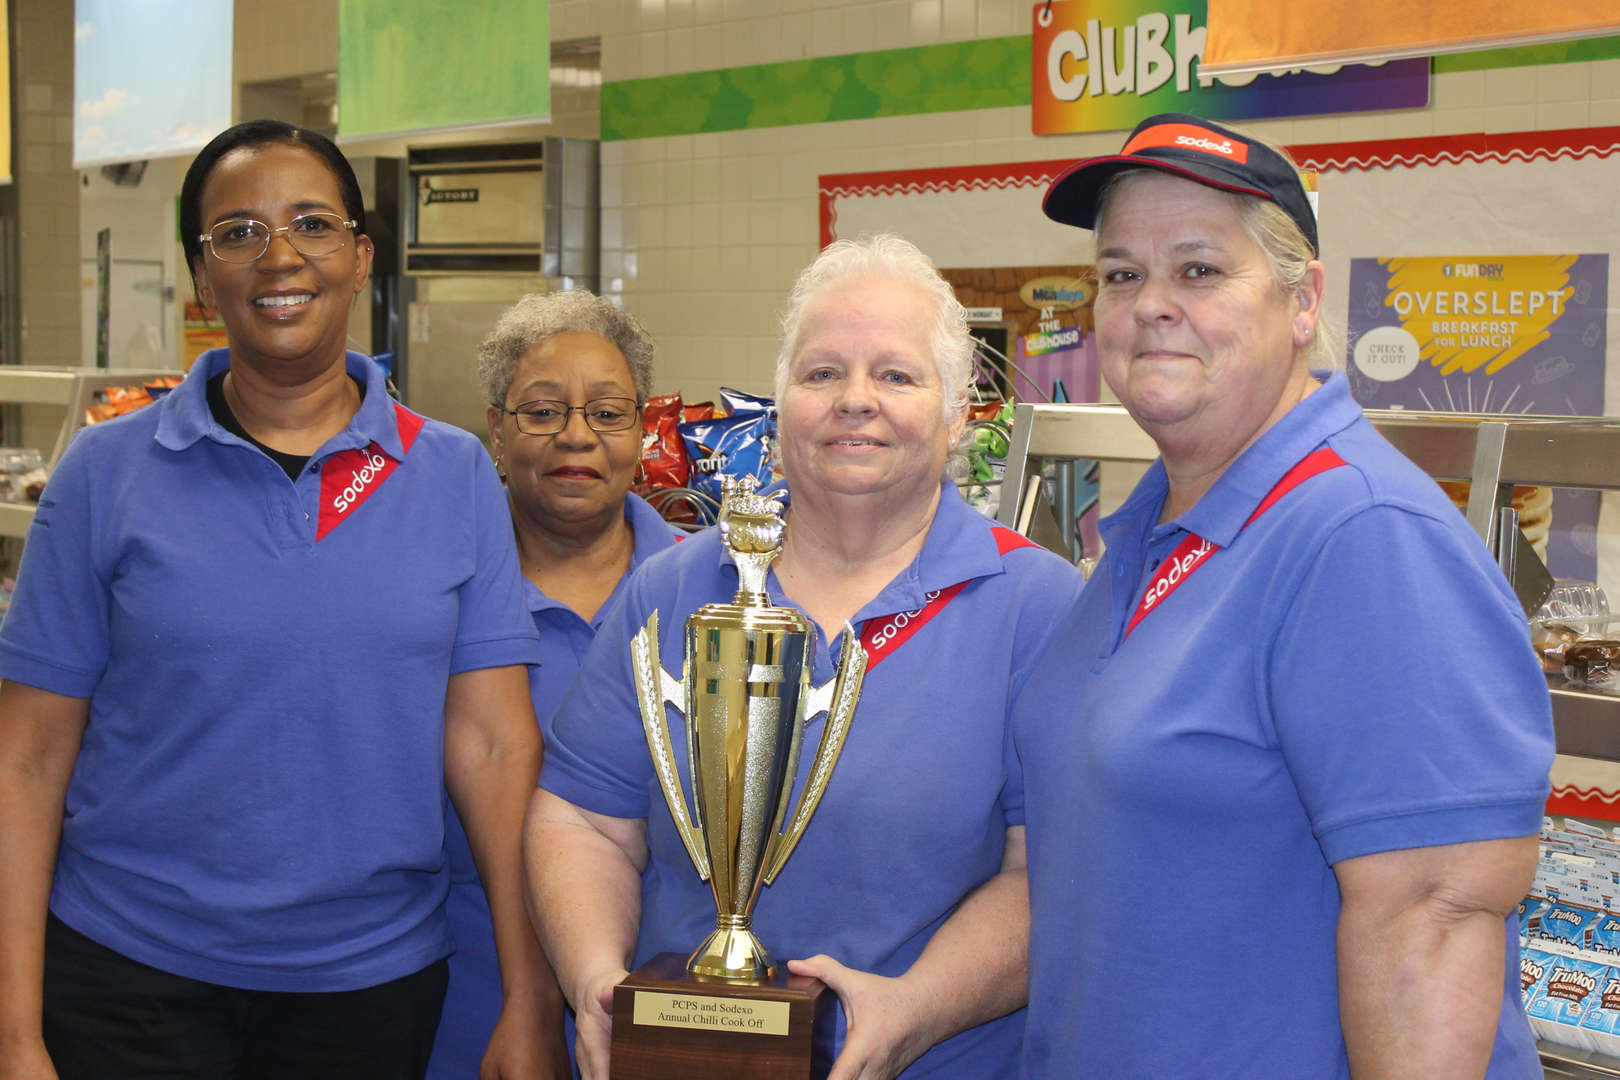 Pocahontas elementary cafeteria staff win chili cook-off